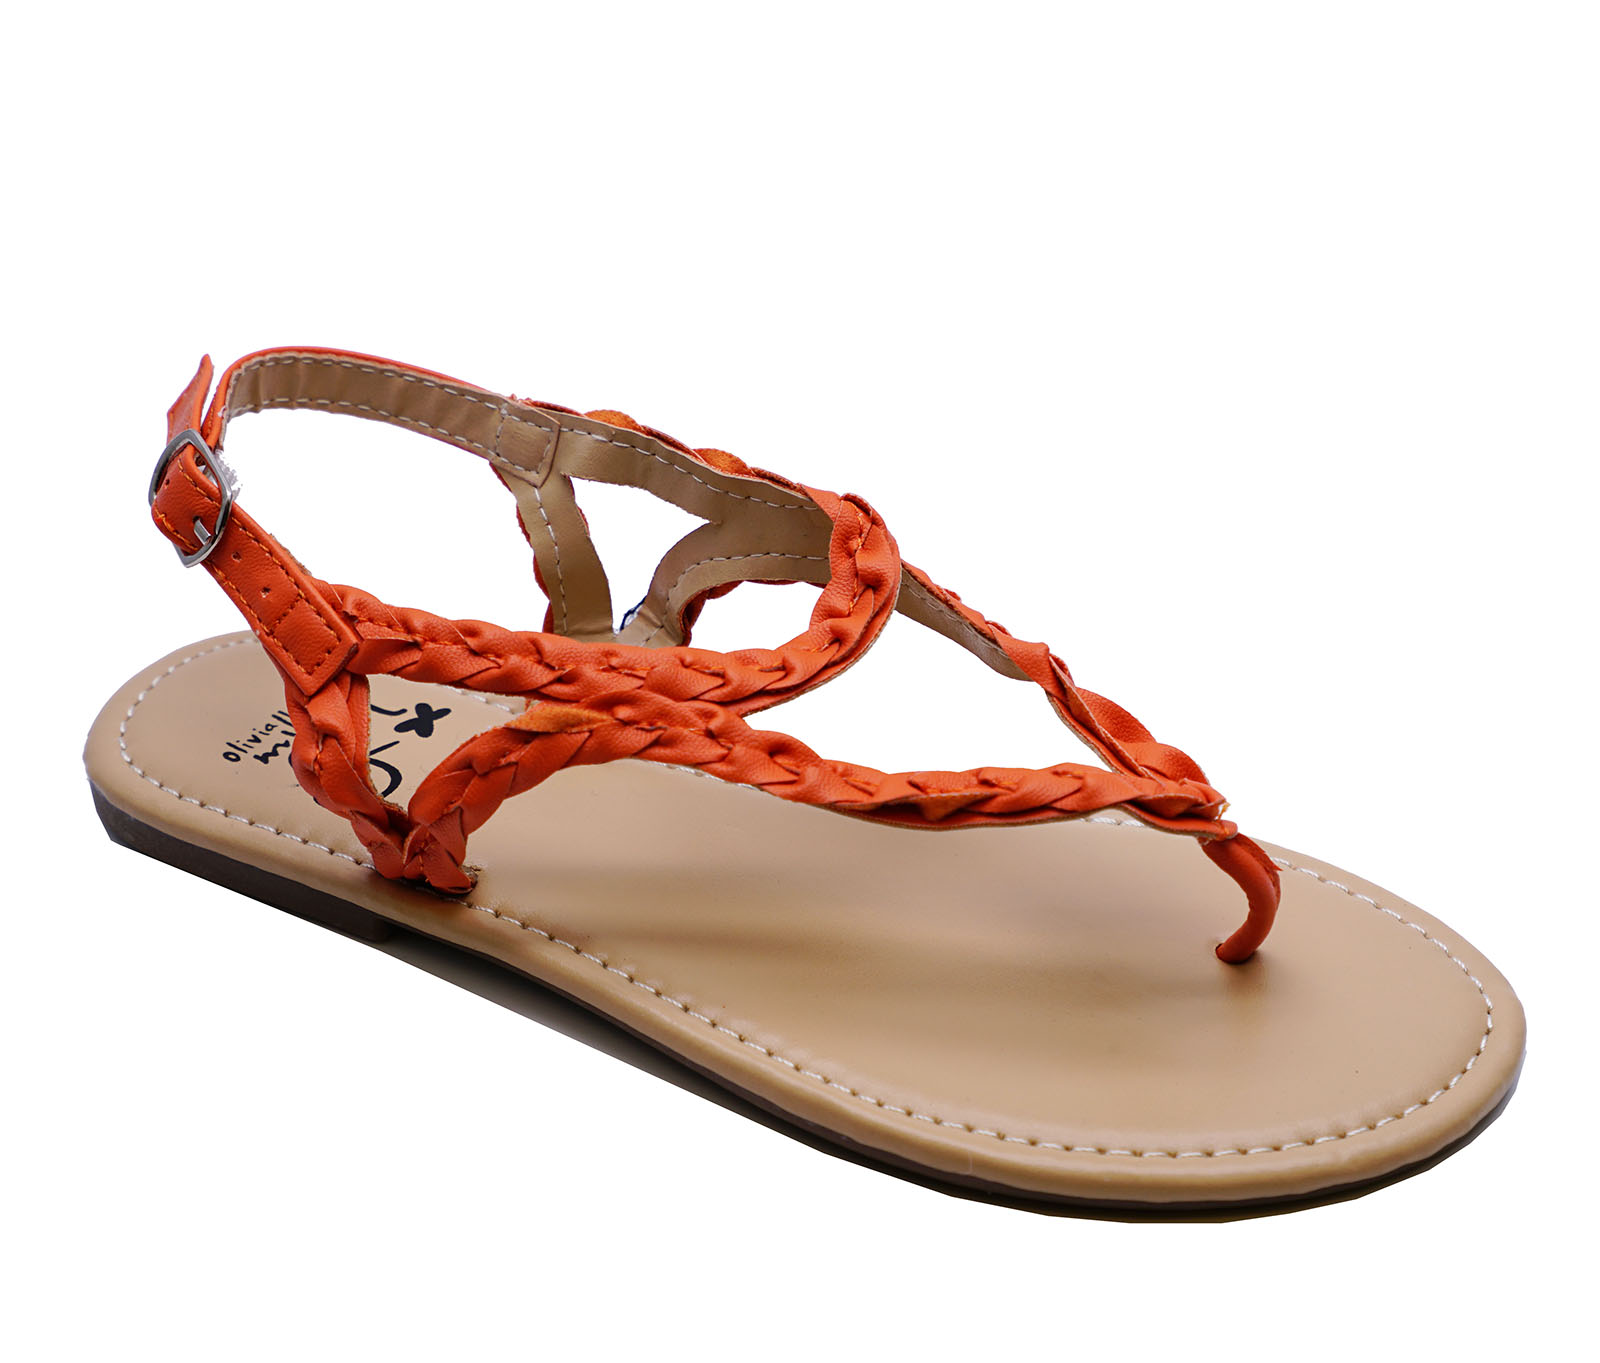 23fa0fd436a Sentinel GIRLS KIDS CHILDRENS ORANGE TOE-POST GLADIATOR SANDALS SUMMER  SHOES SIZES 11-4